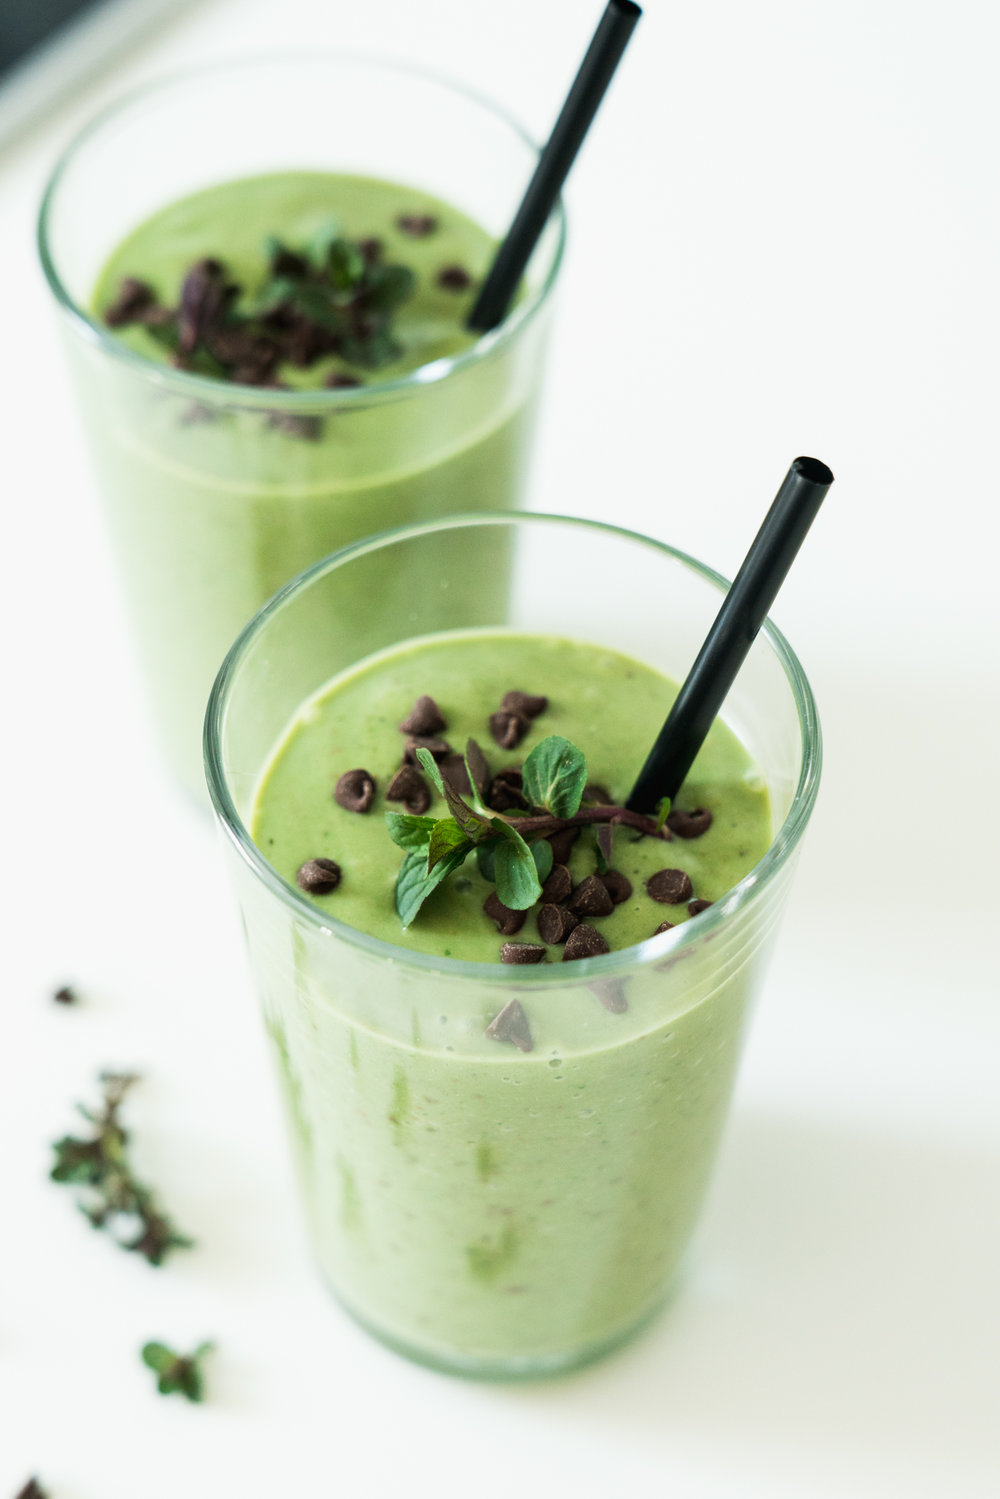 A healthy mint chocolate chip smoothie made with creamy avocado, spinach, silken tofu that tastes like mint chocolate chip. Secret ingredient? Optional CBD oil.